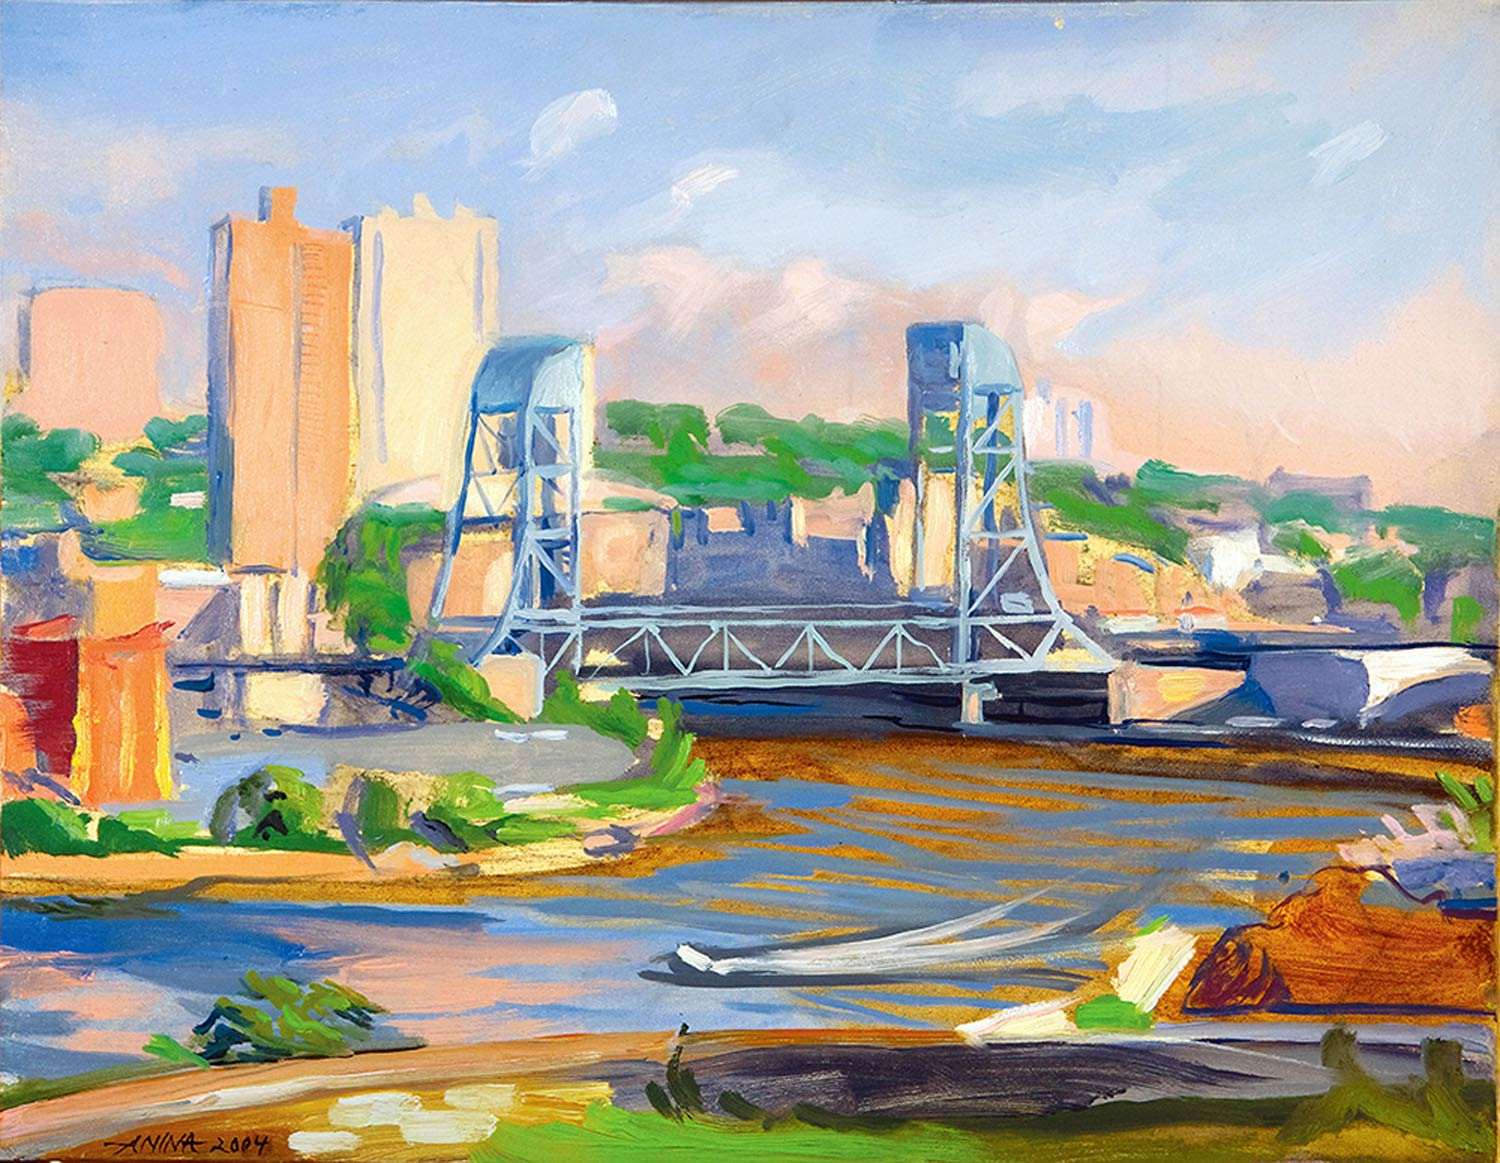 Broadway Bridge 16 x 20 in. oil on wood 2004